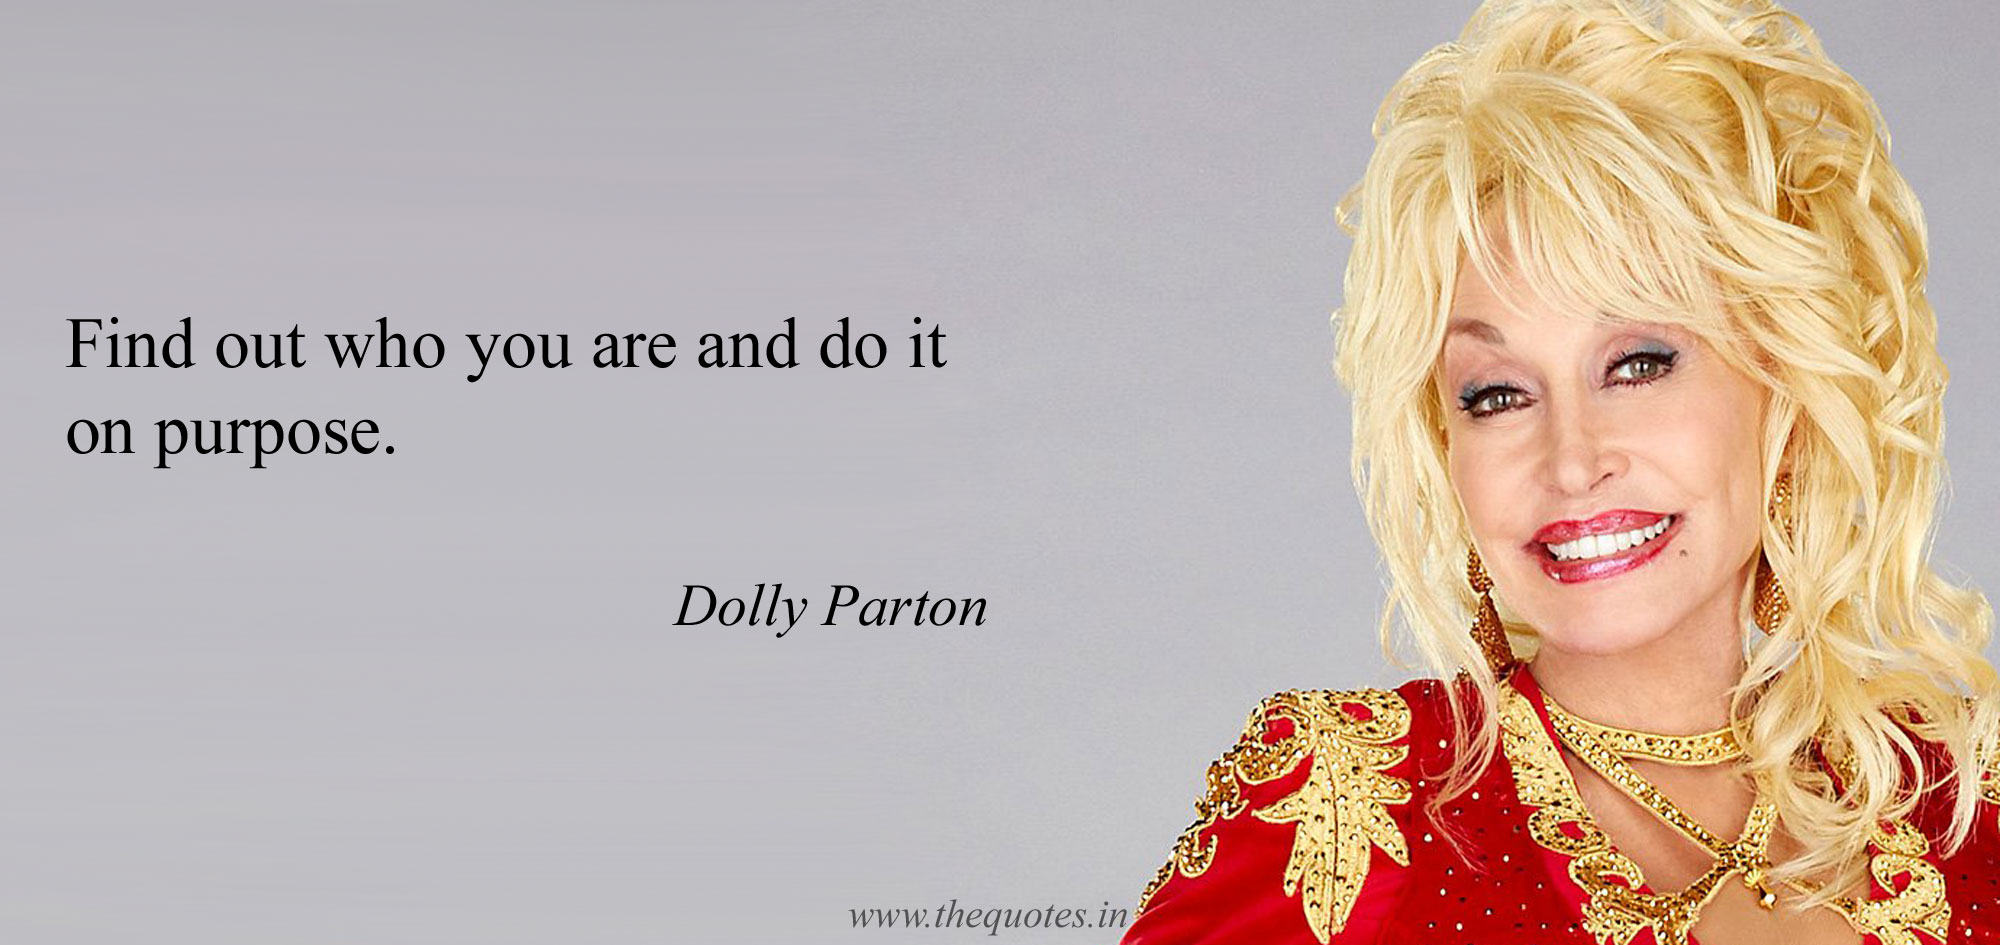 Dolly-Parton-Quotes-2.jpg